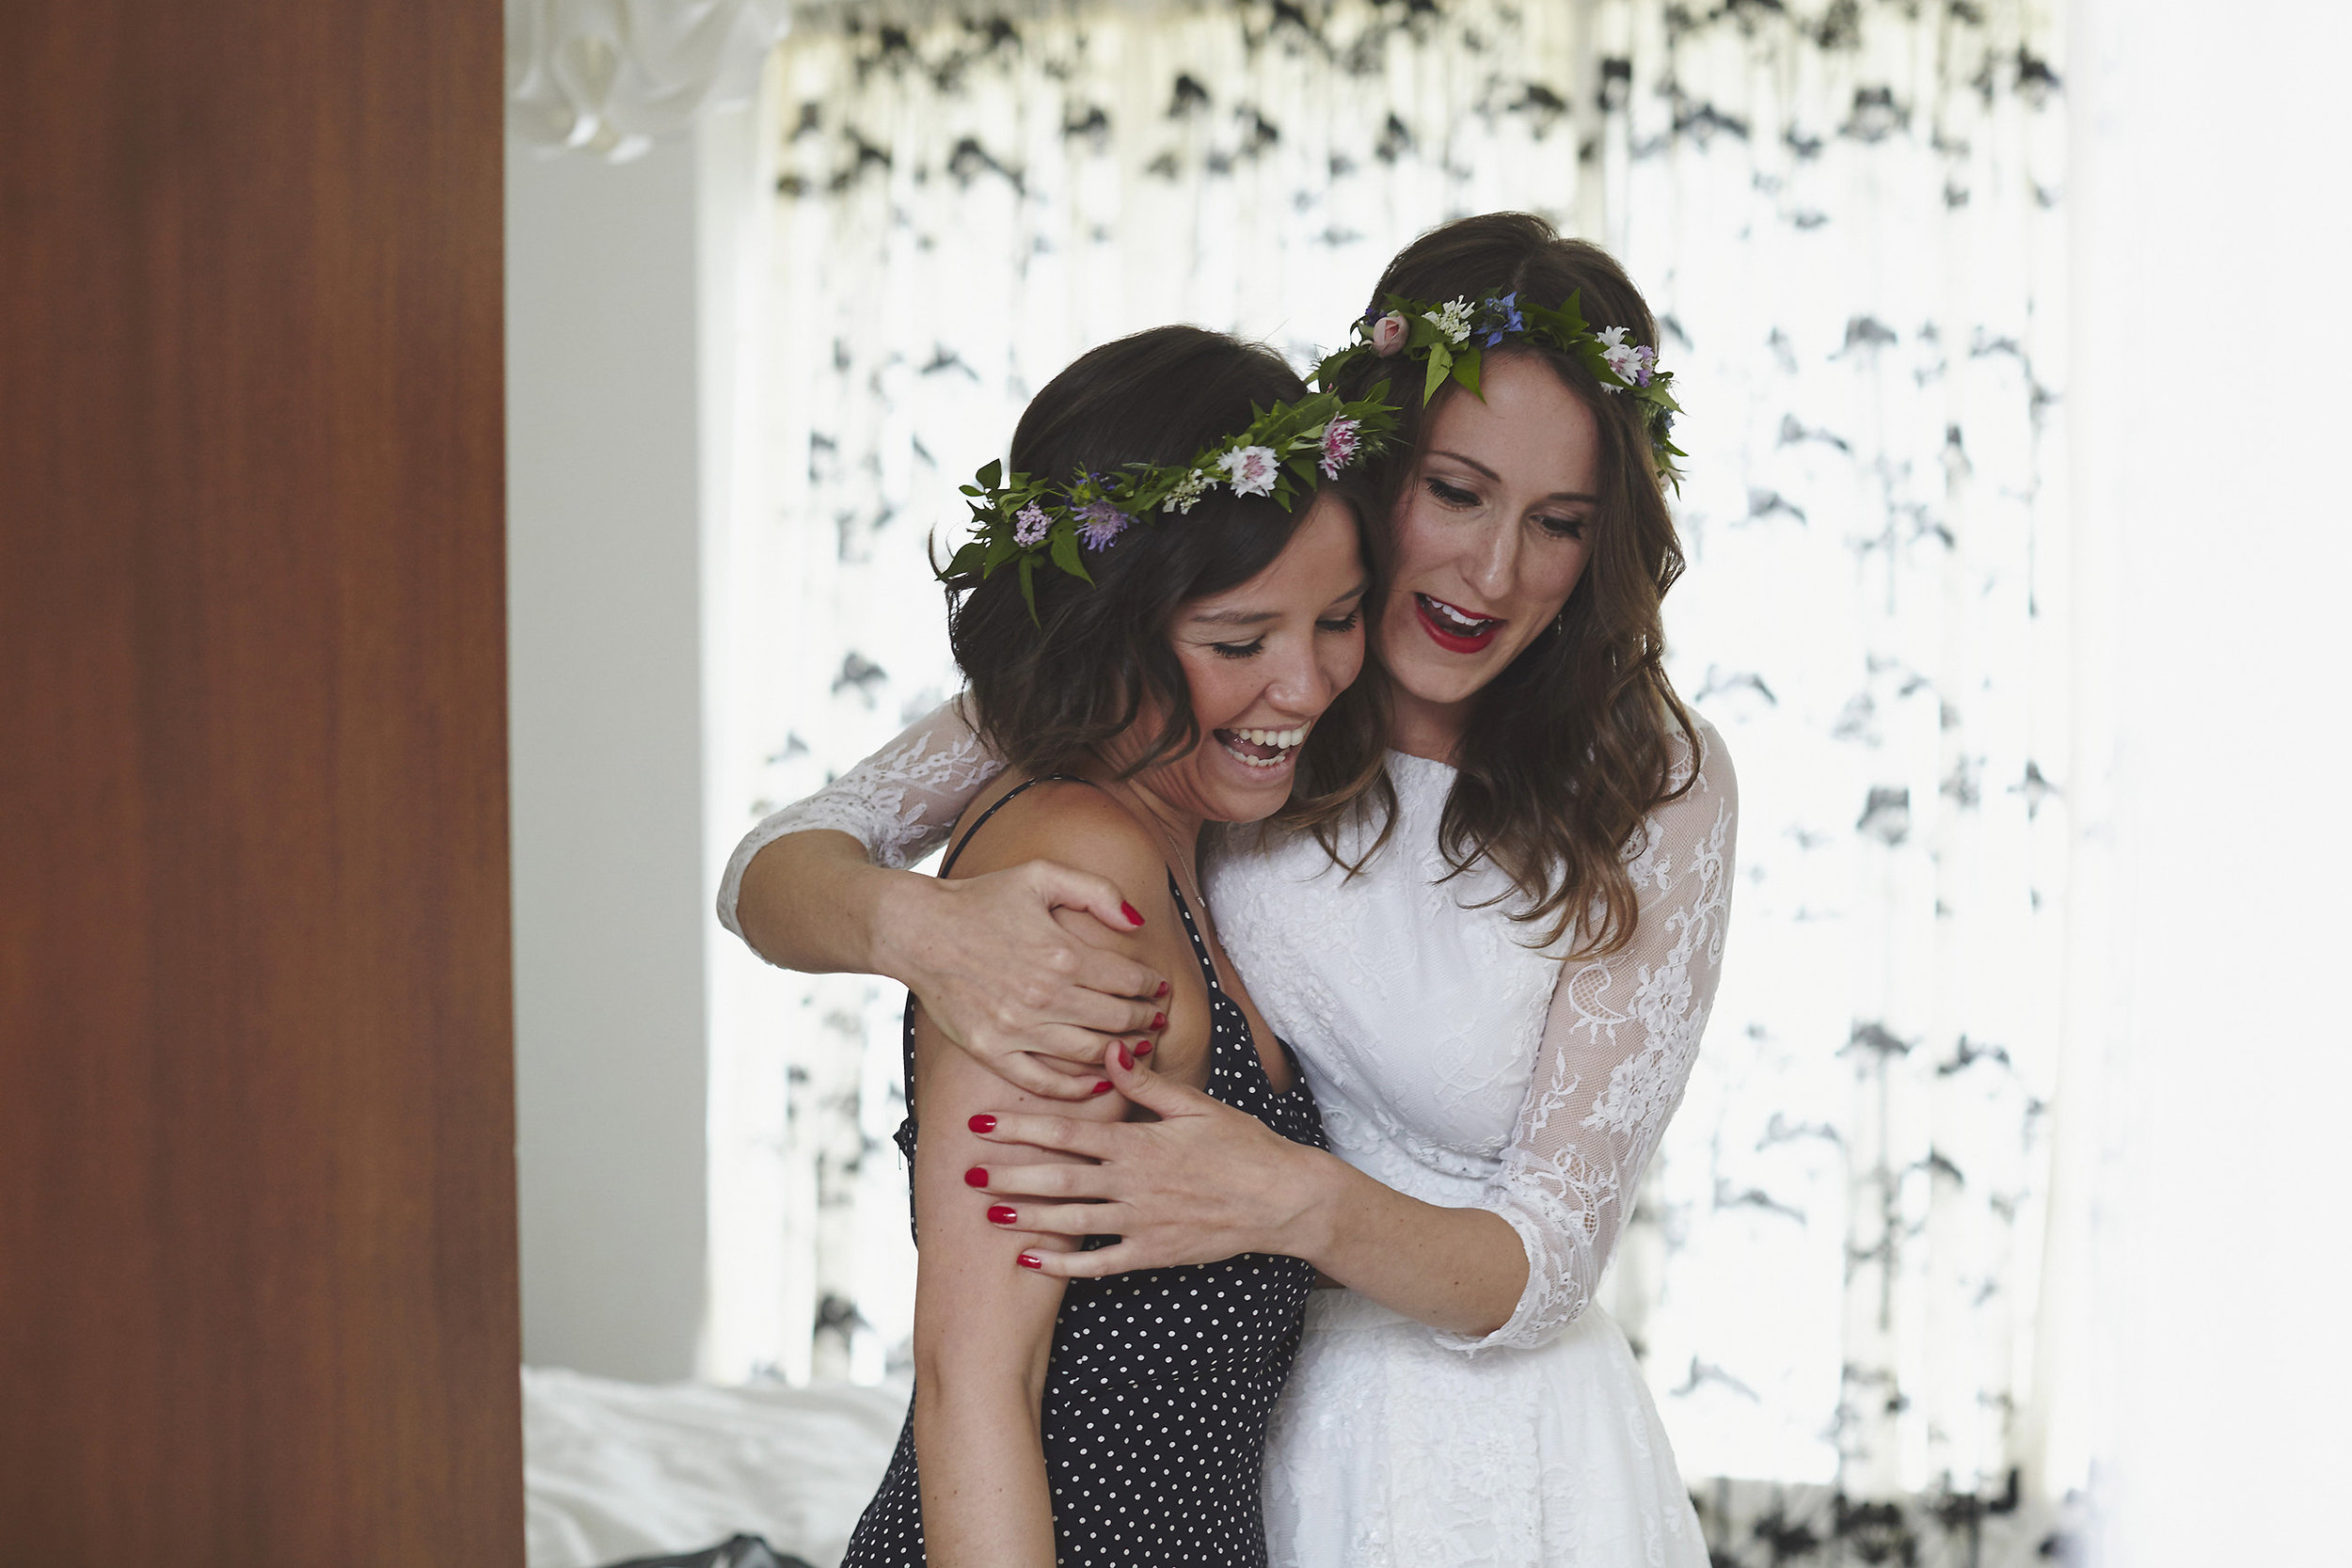 Flower crowns for bride and bridesmaids